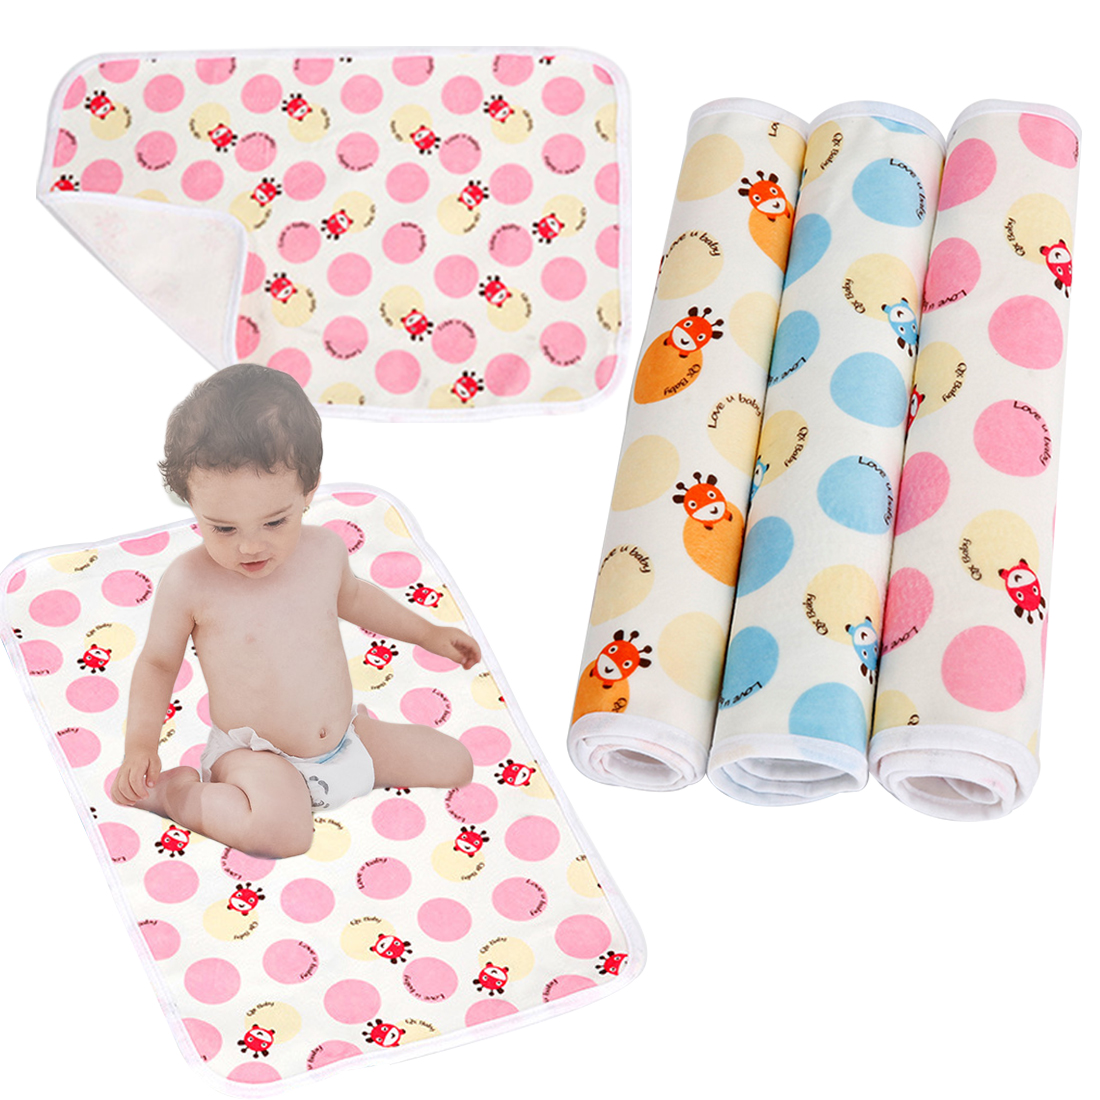 Baby Cushion Reusable Diaper Changing mat Infants Portable Foldable Washable Waterproof Mattress Cartoon Changing Pad Floor